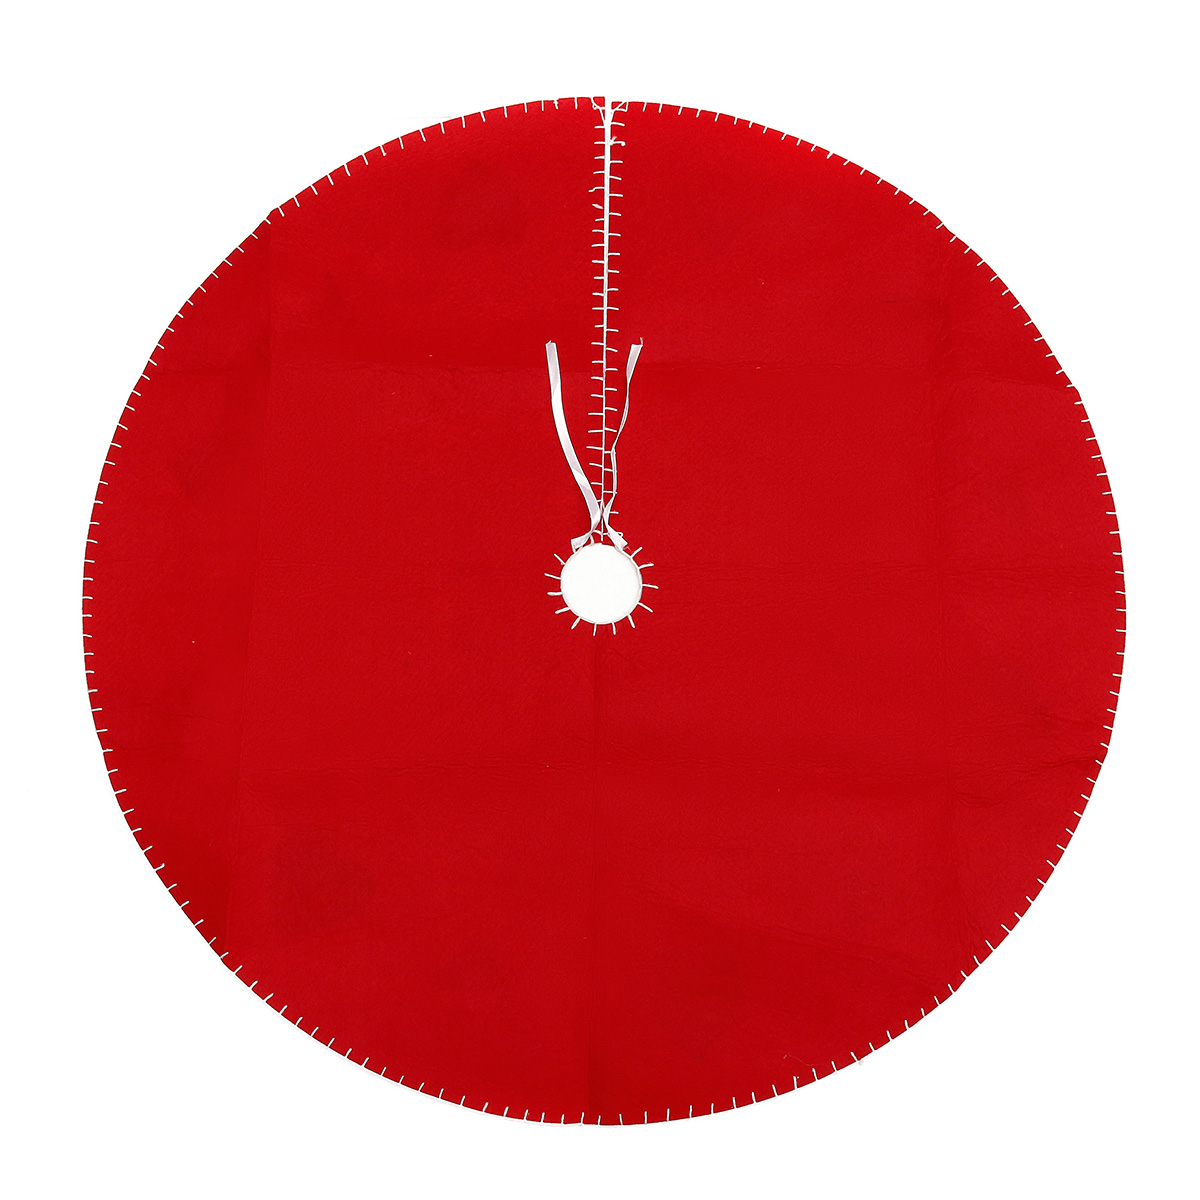 100cm Red Christmas Tree Skirt Carpet Party Gift Decor Pad Ornaments Round Mat